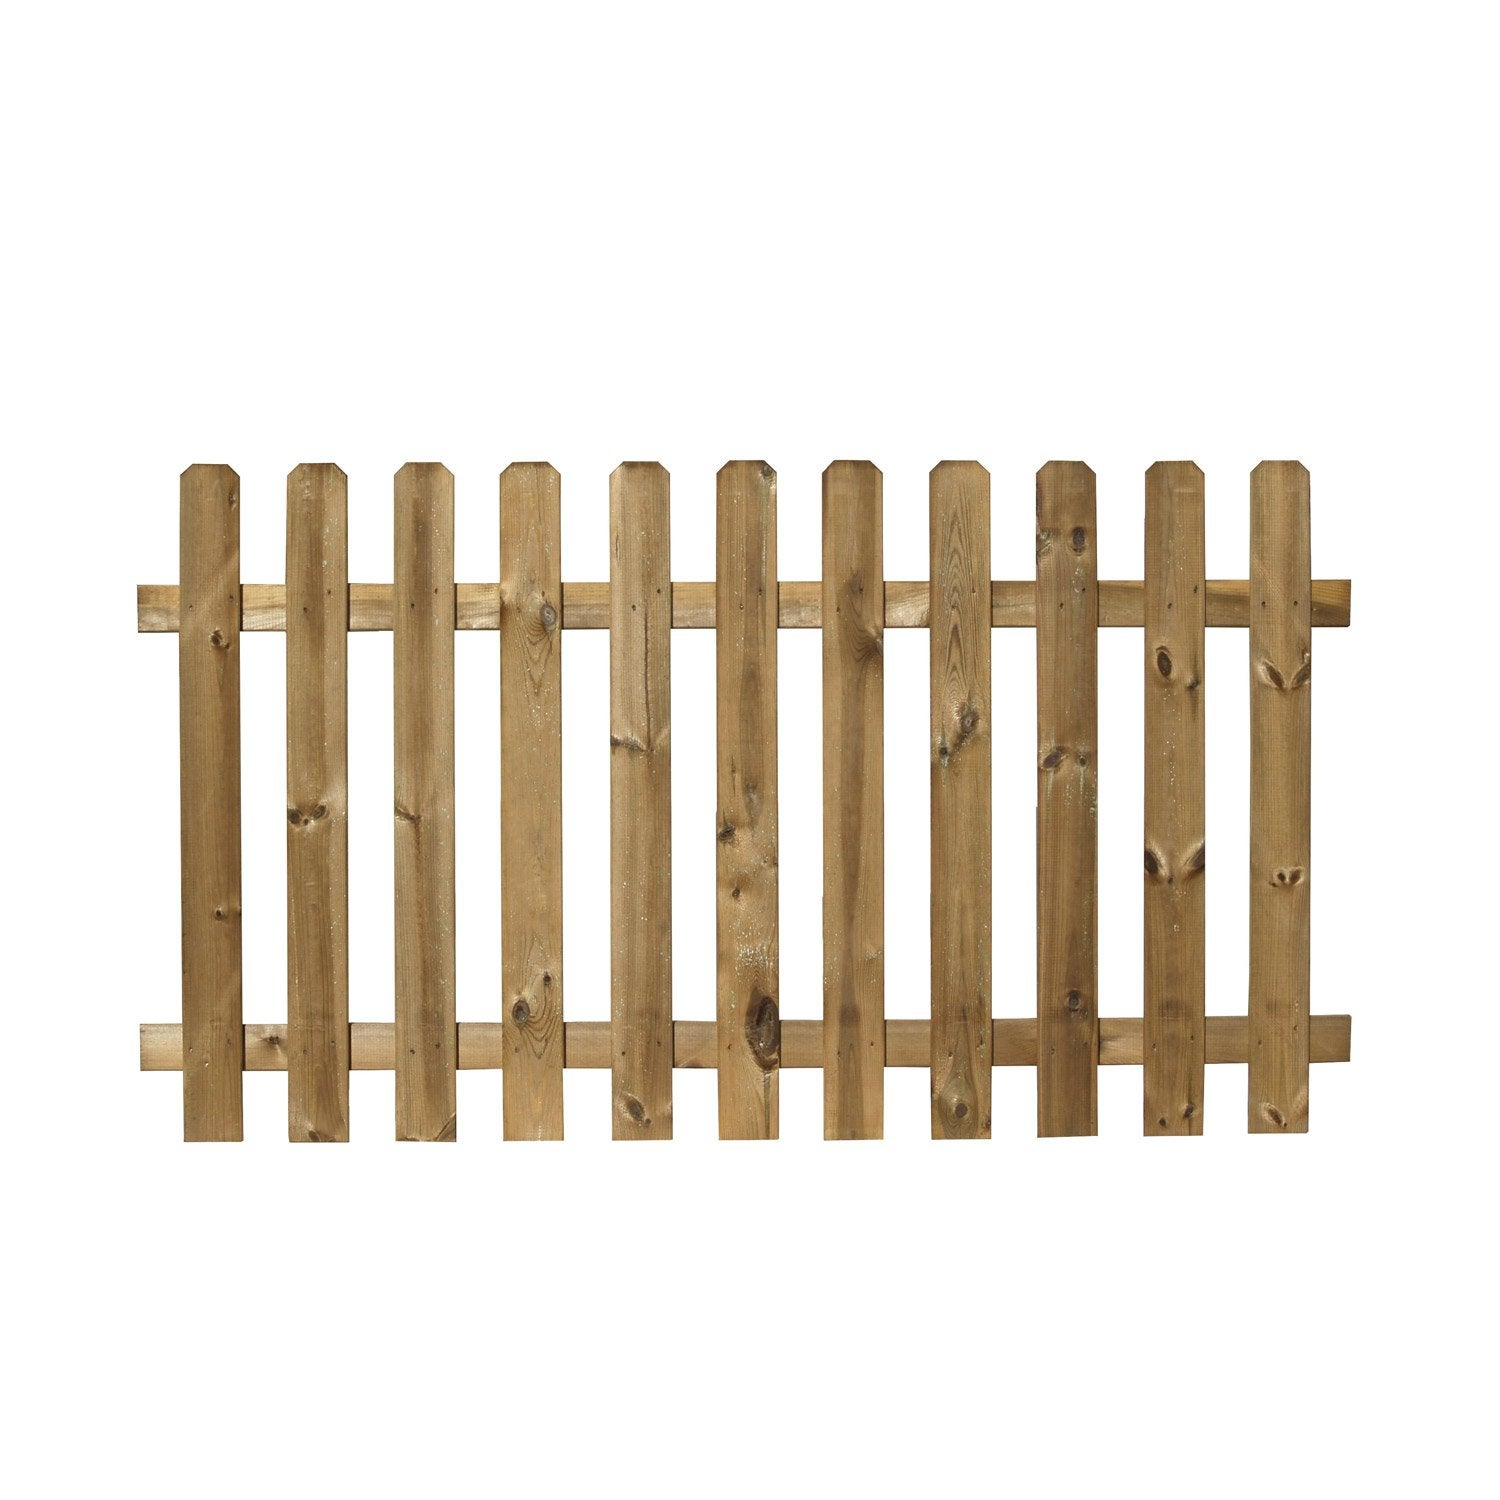 Barri re bois merens marron x cm leroy merlin for Barriere de jardin bois